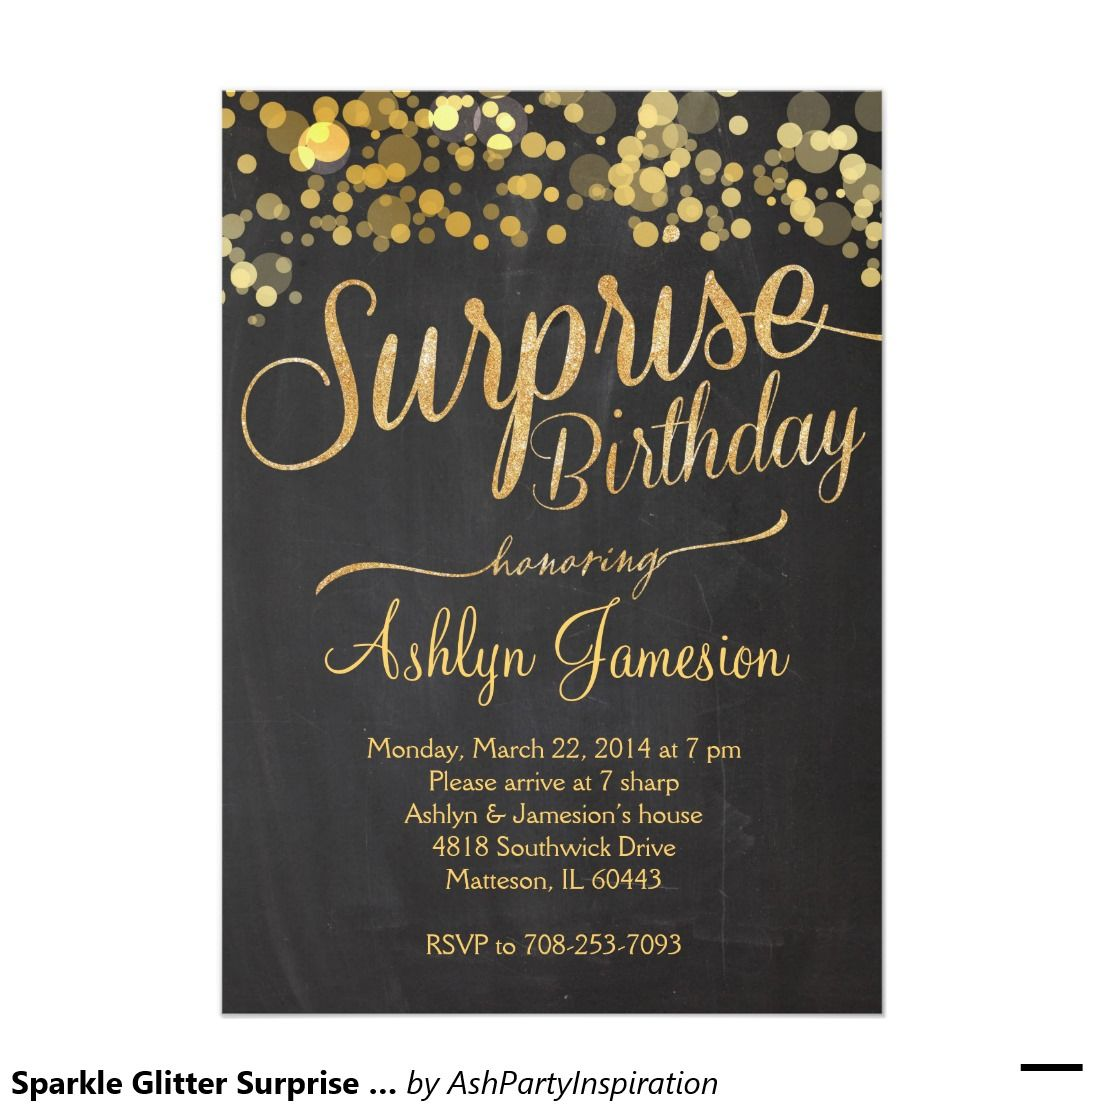 Sparkle Glitter Surprise Birthday Invitation | Surprise birthday ...